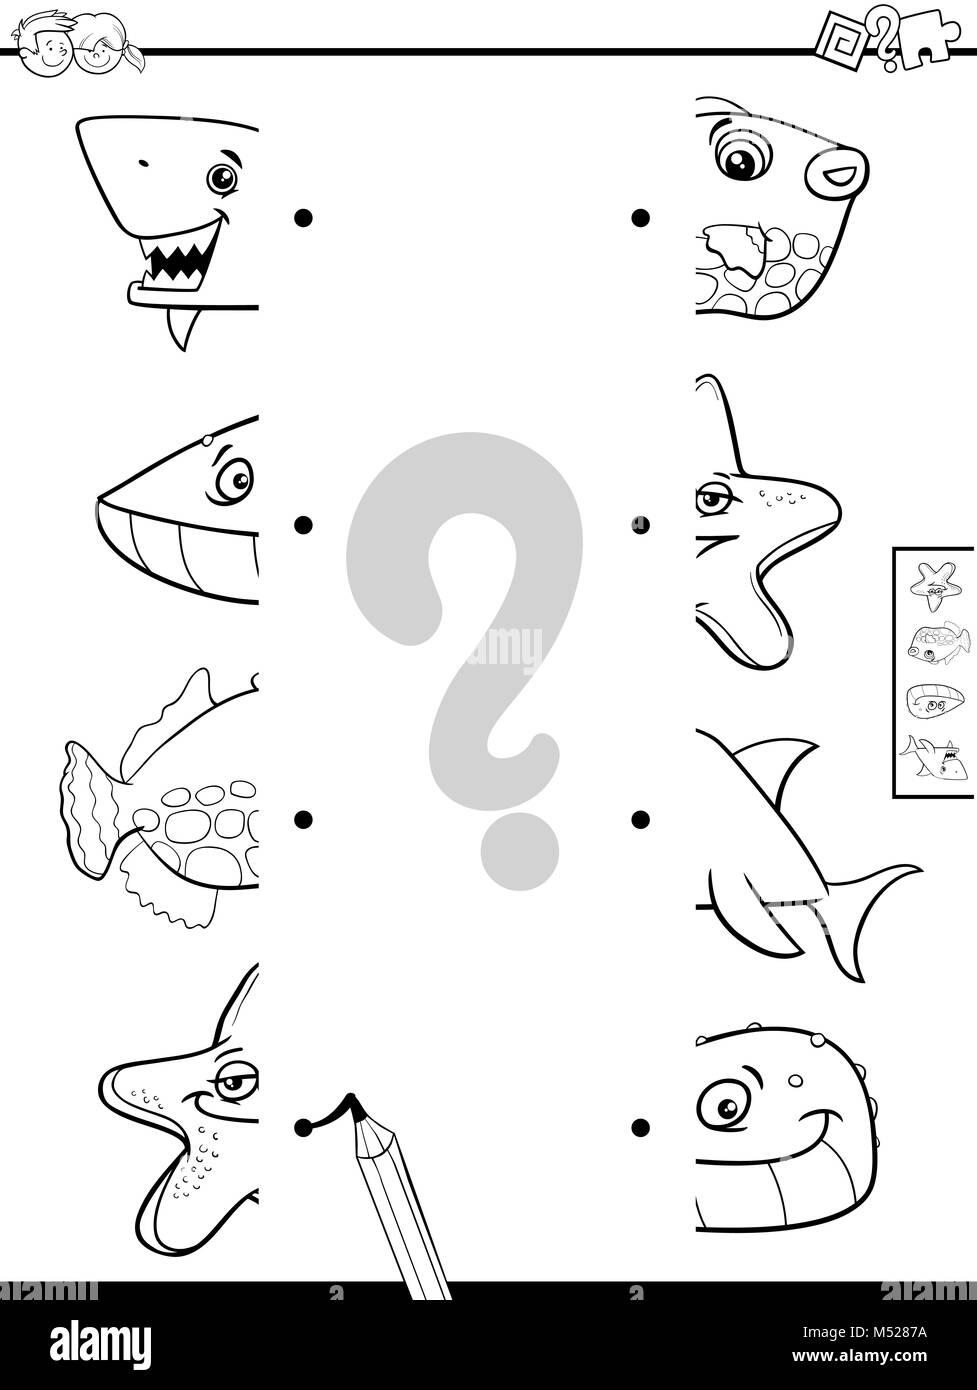 match animal halves coloring book - Stock Image